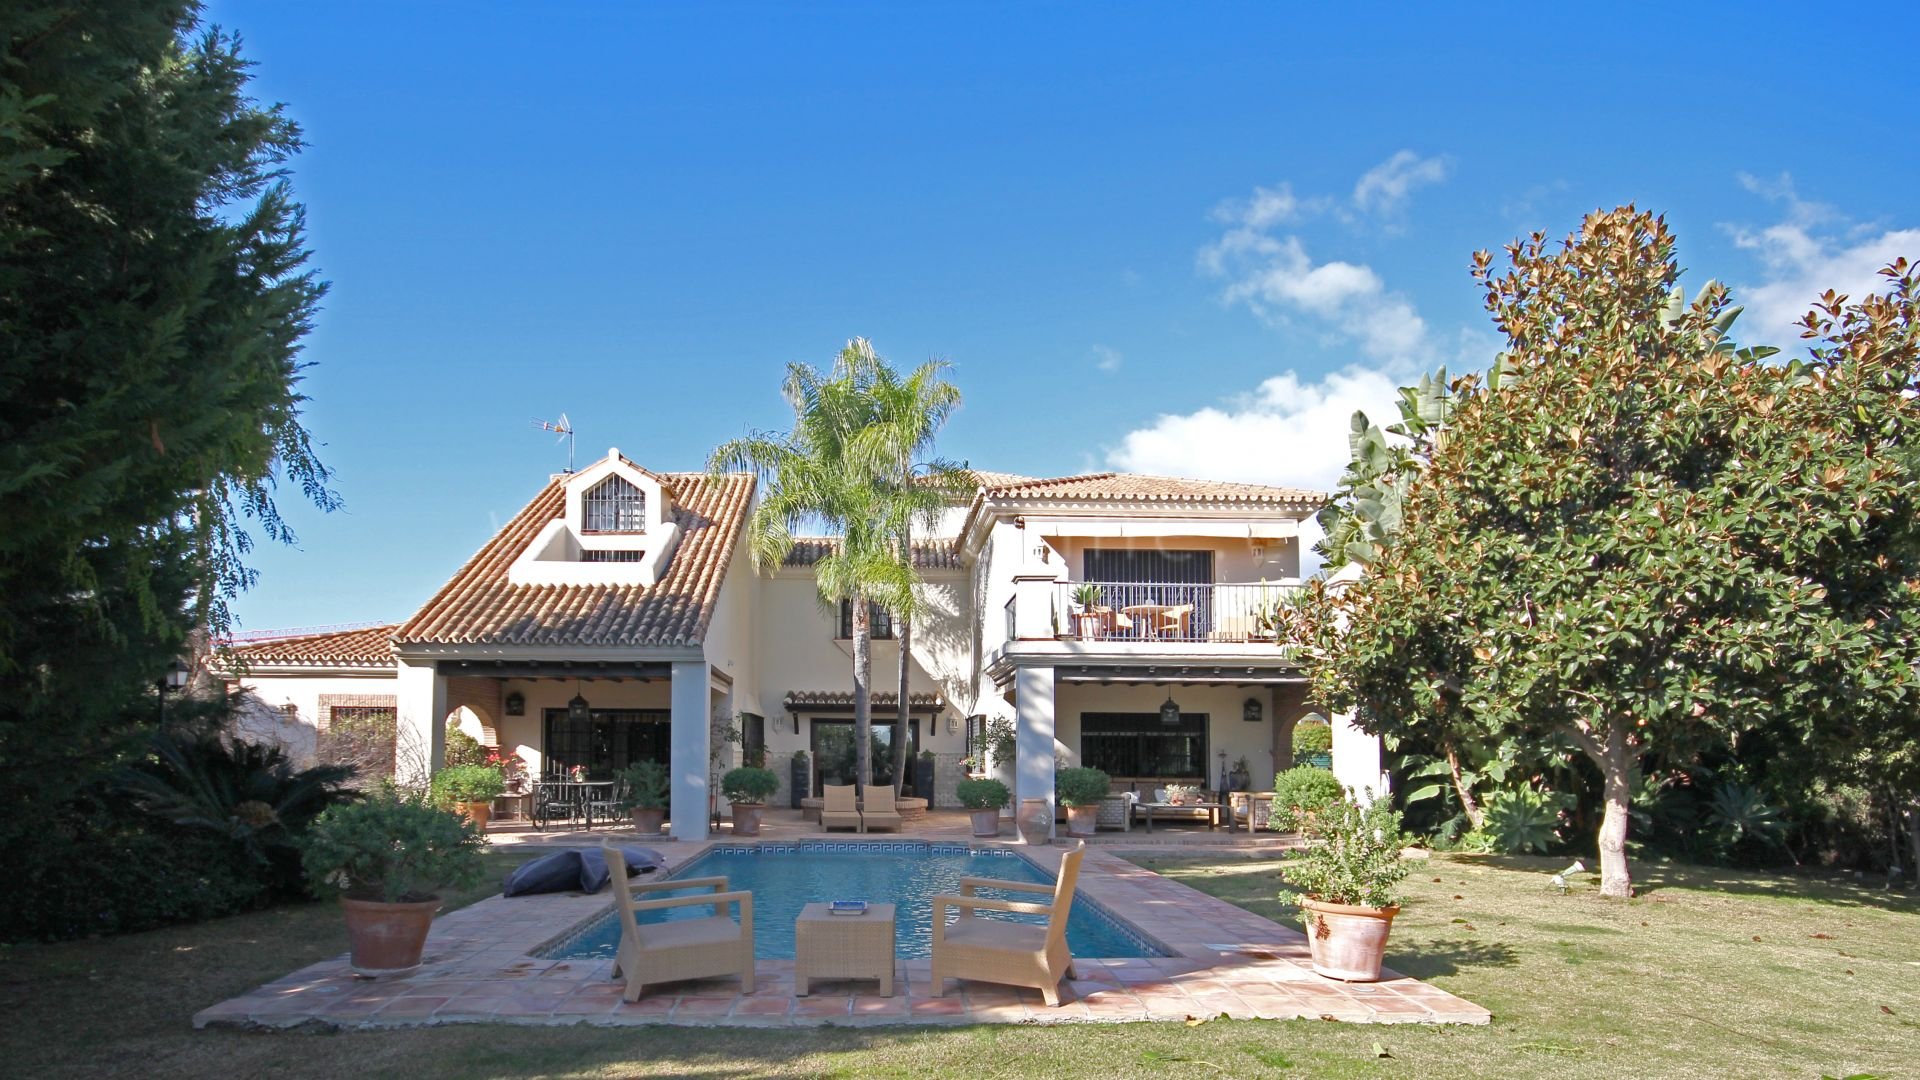 Villa for sale in Haza del Conde, Nueva Andalucia